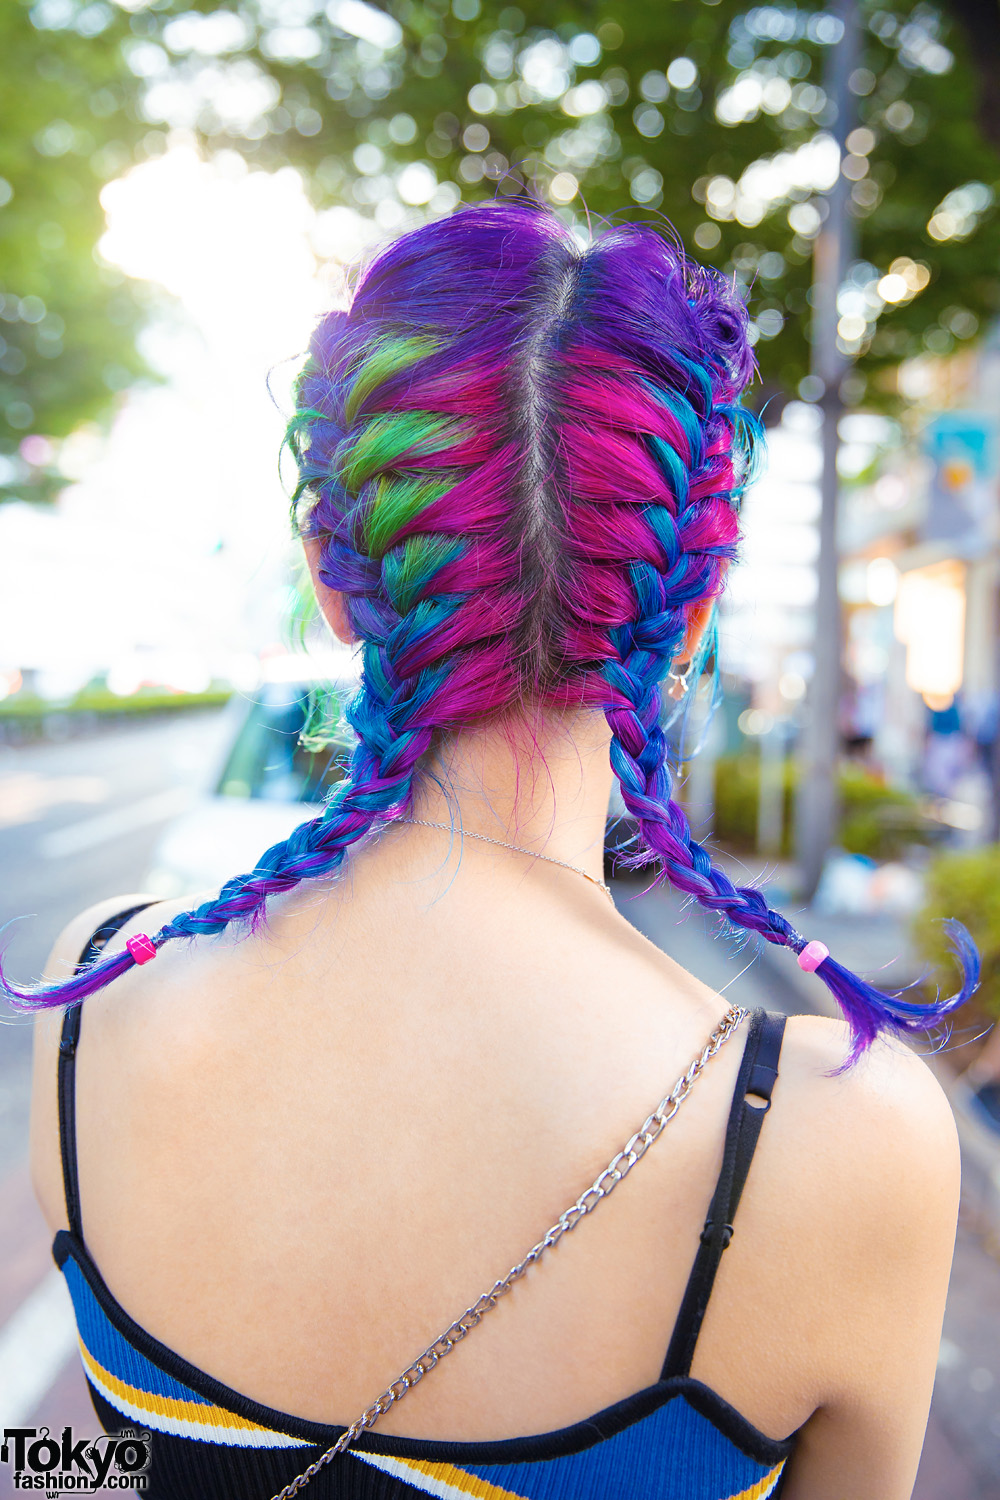 Harajuku Girl W Colorful Twin Braids Striped Tank Top